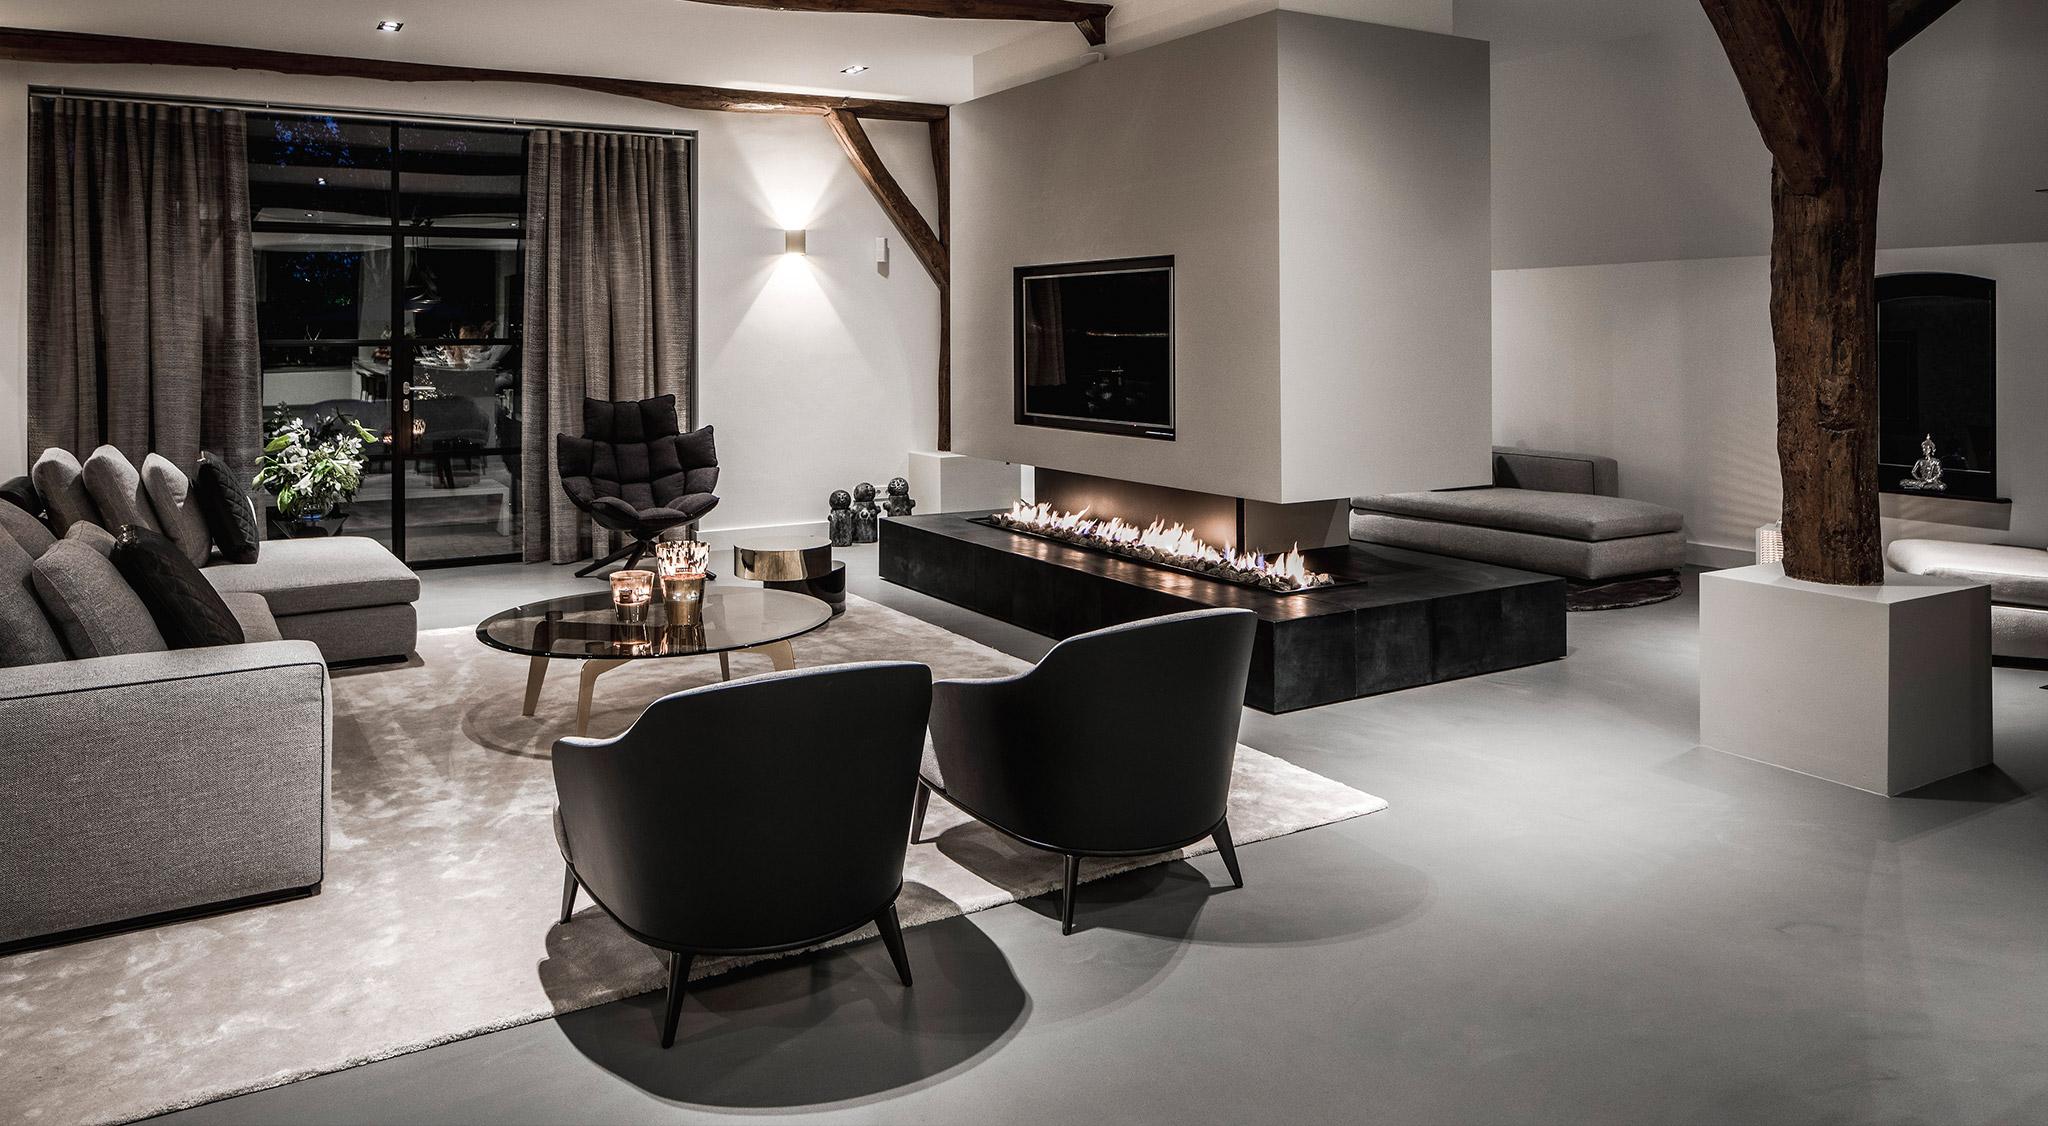 A sitting room with lit fireplace and a light grey Senso floor